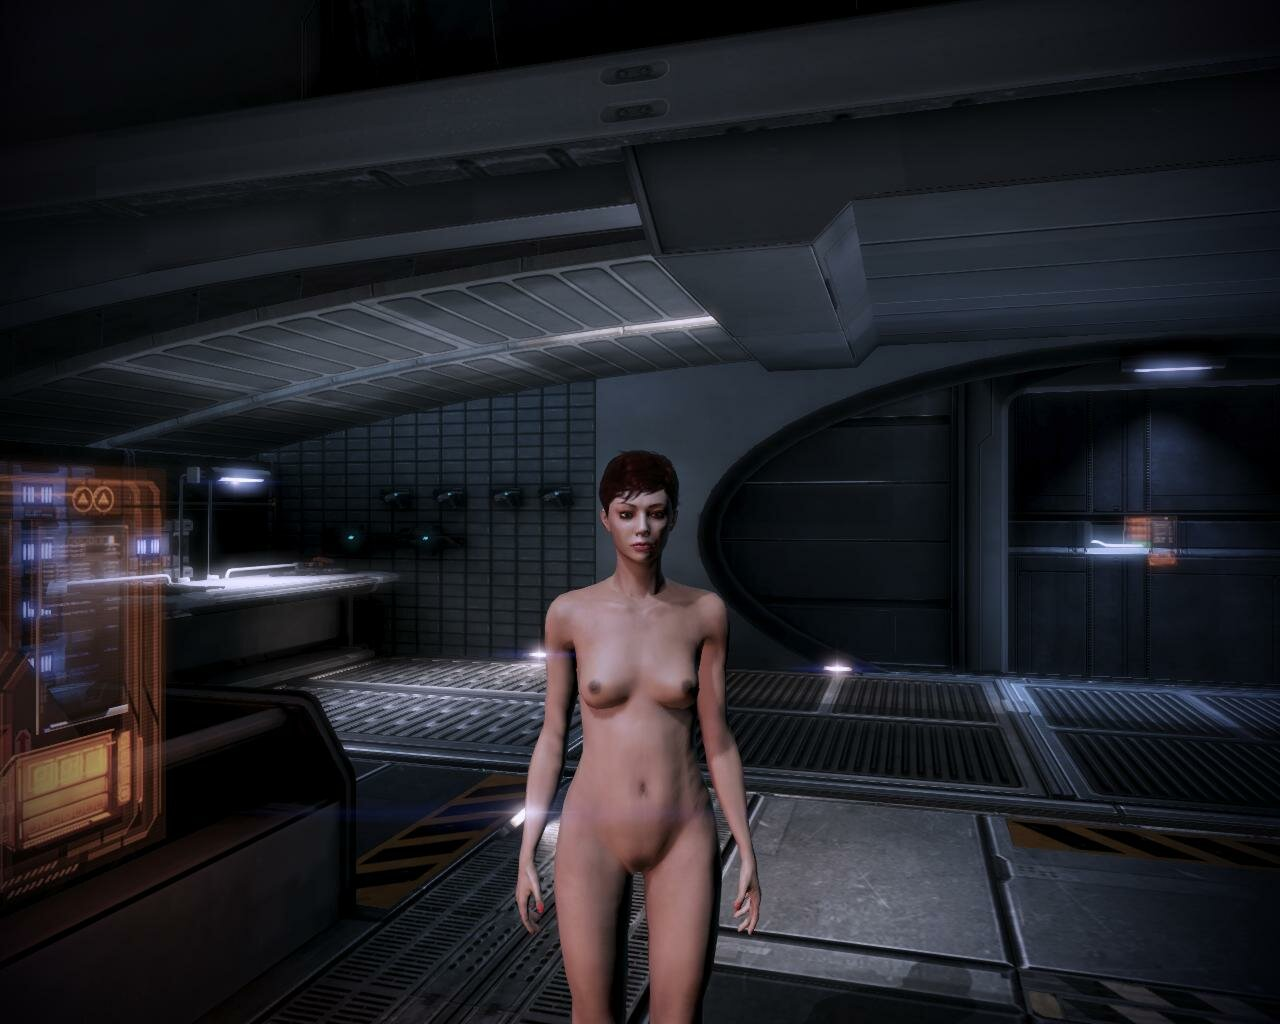 Assassin's creed nude mod pics smut photos